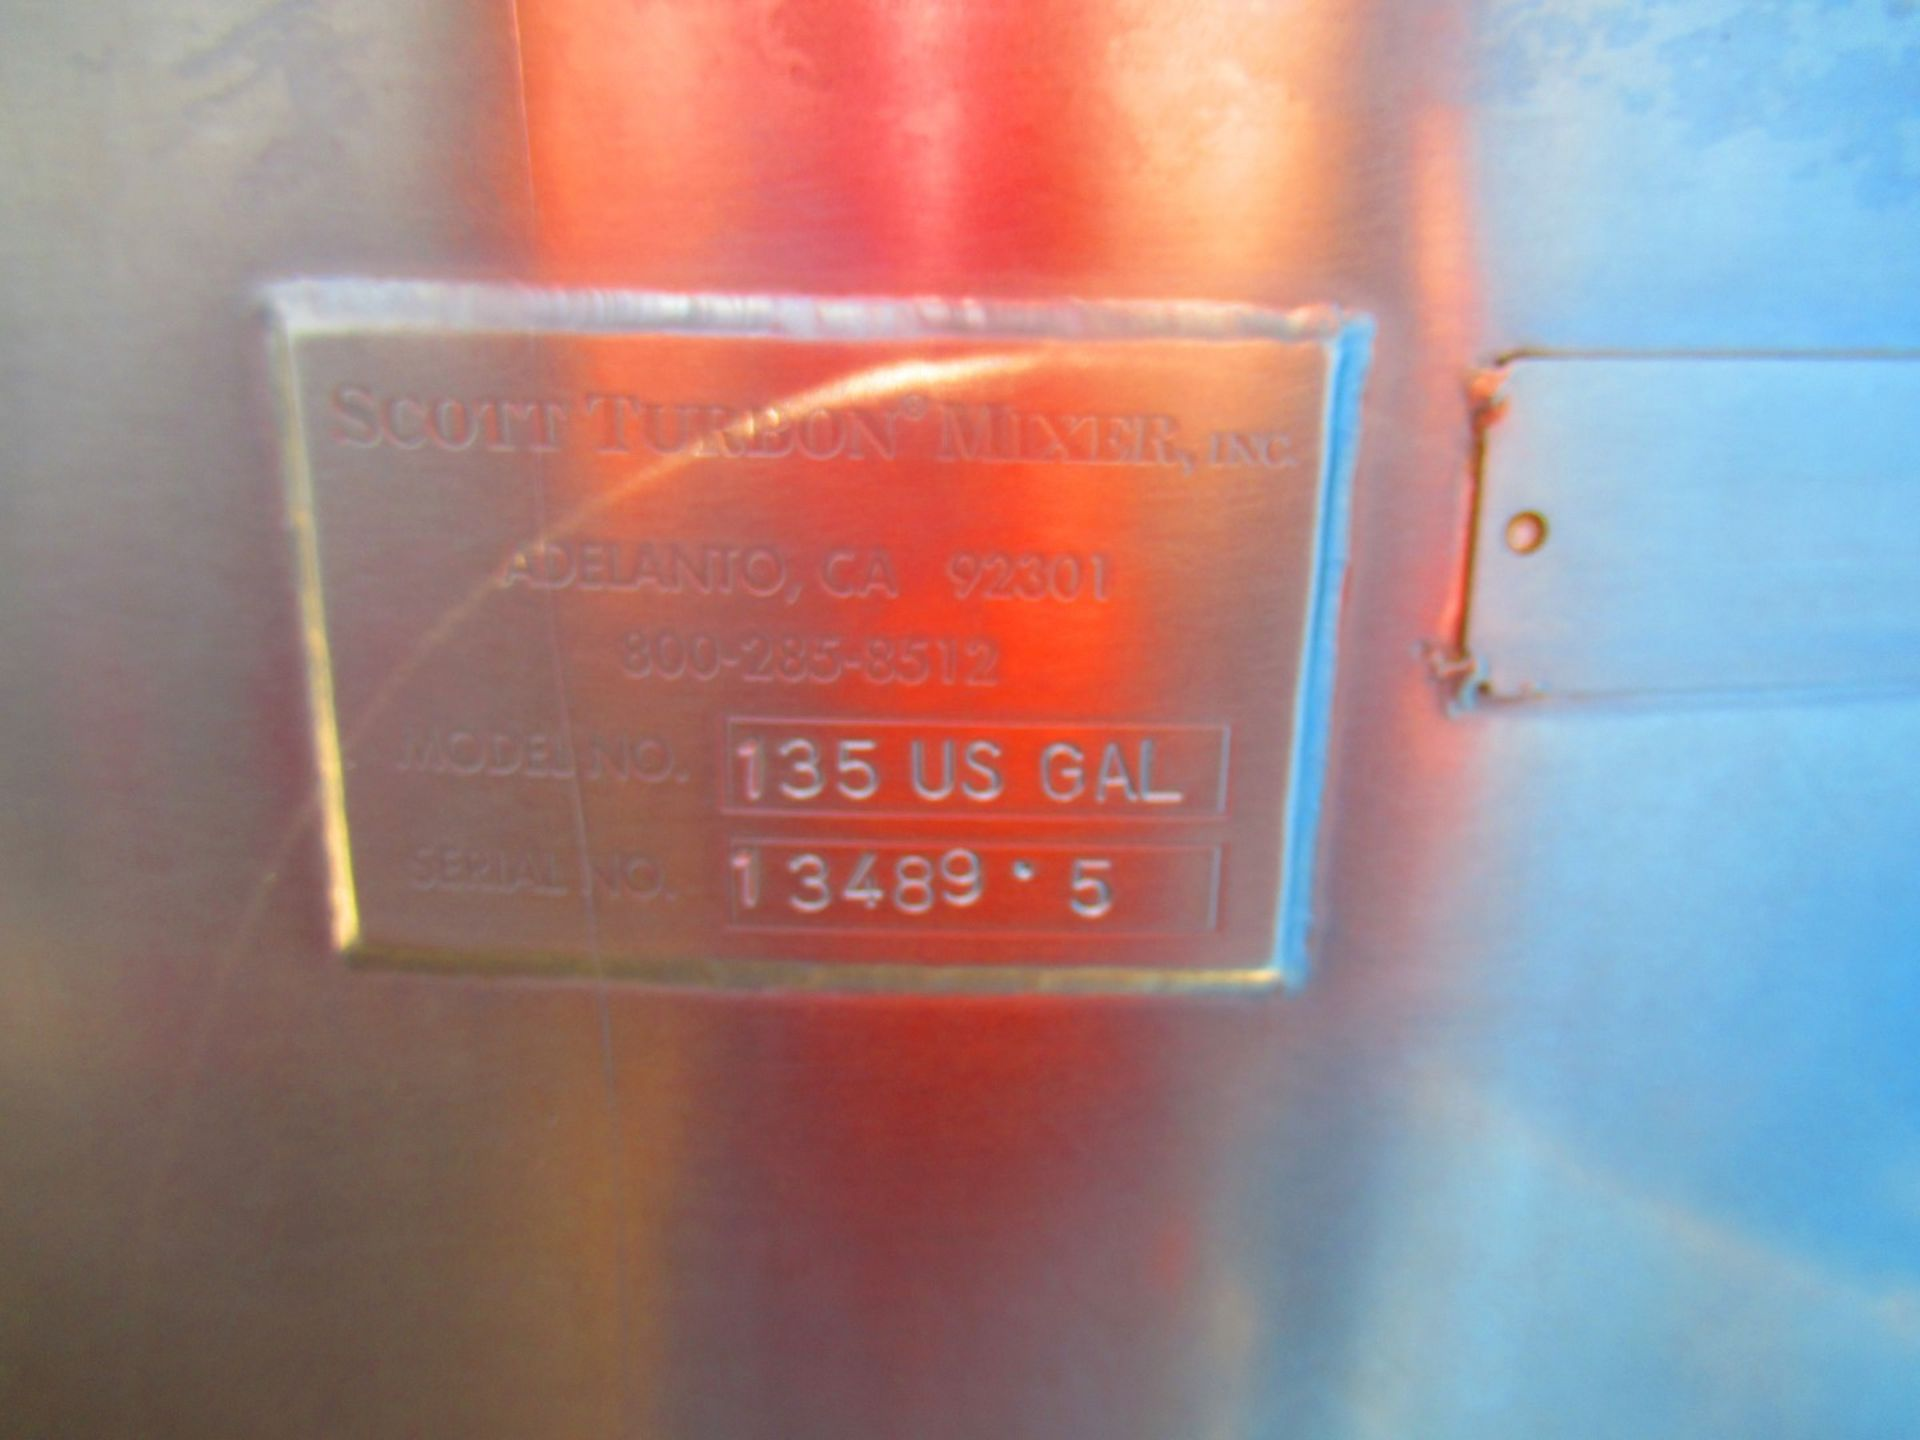 135 US Gal Stainless Tank - Image 4 of 4